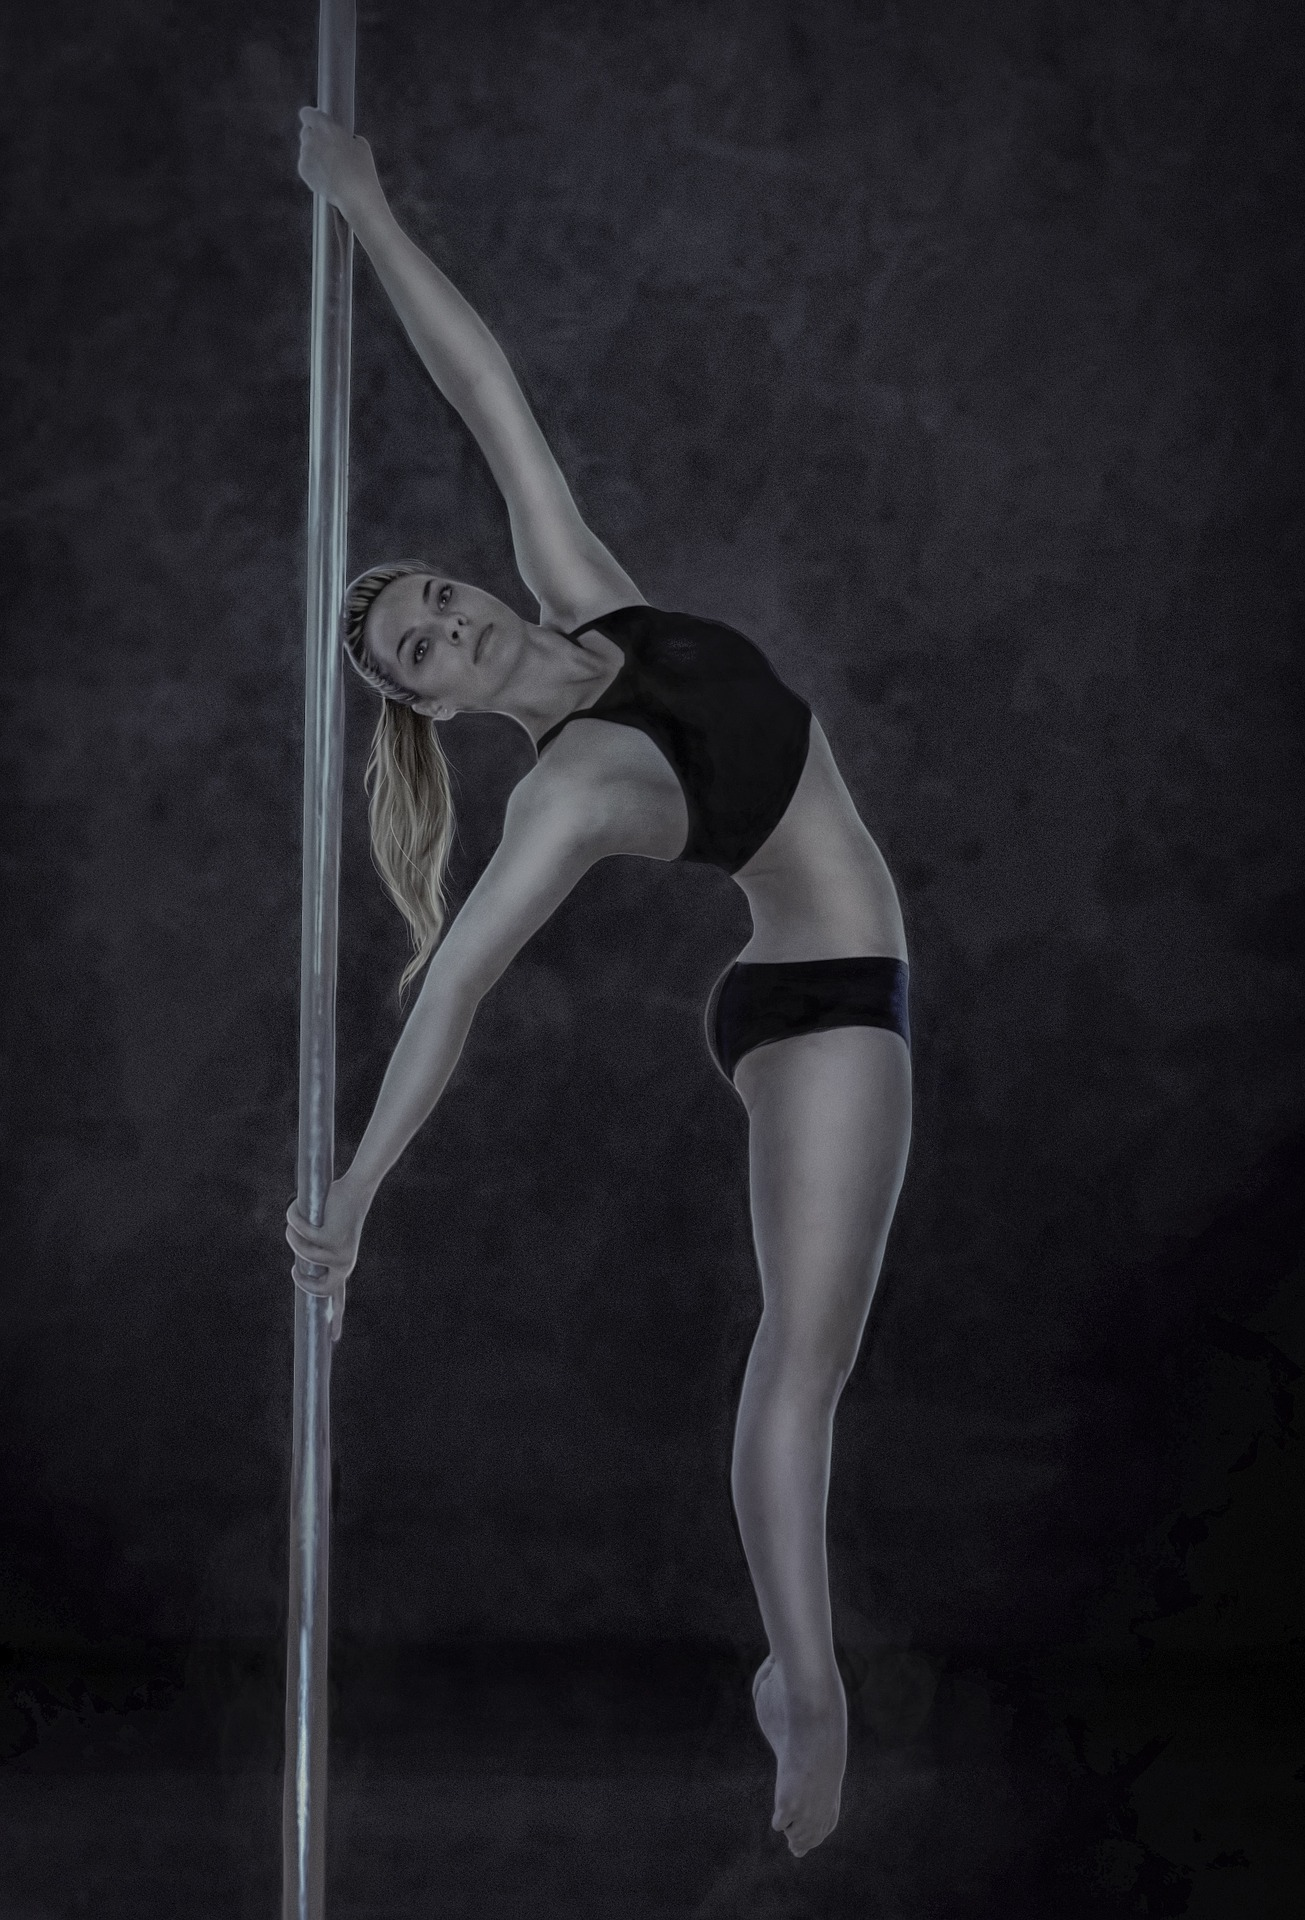 Girl with the pole photo